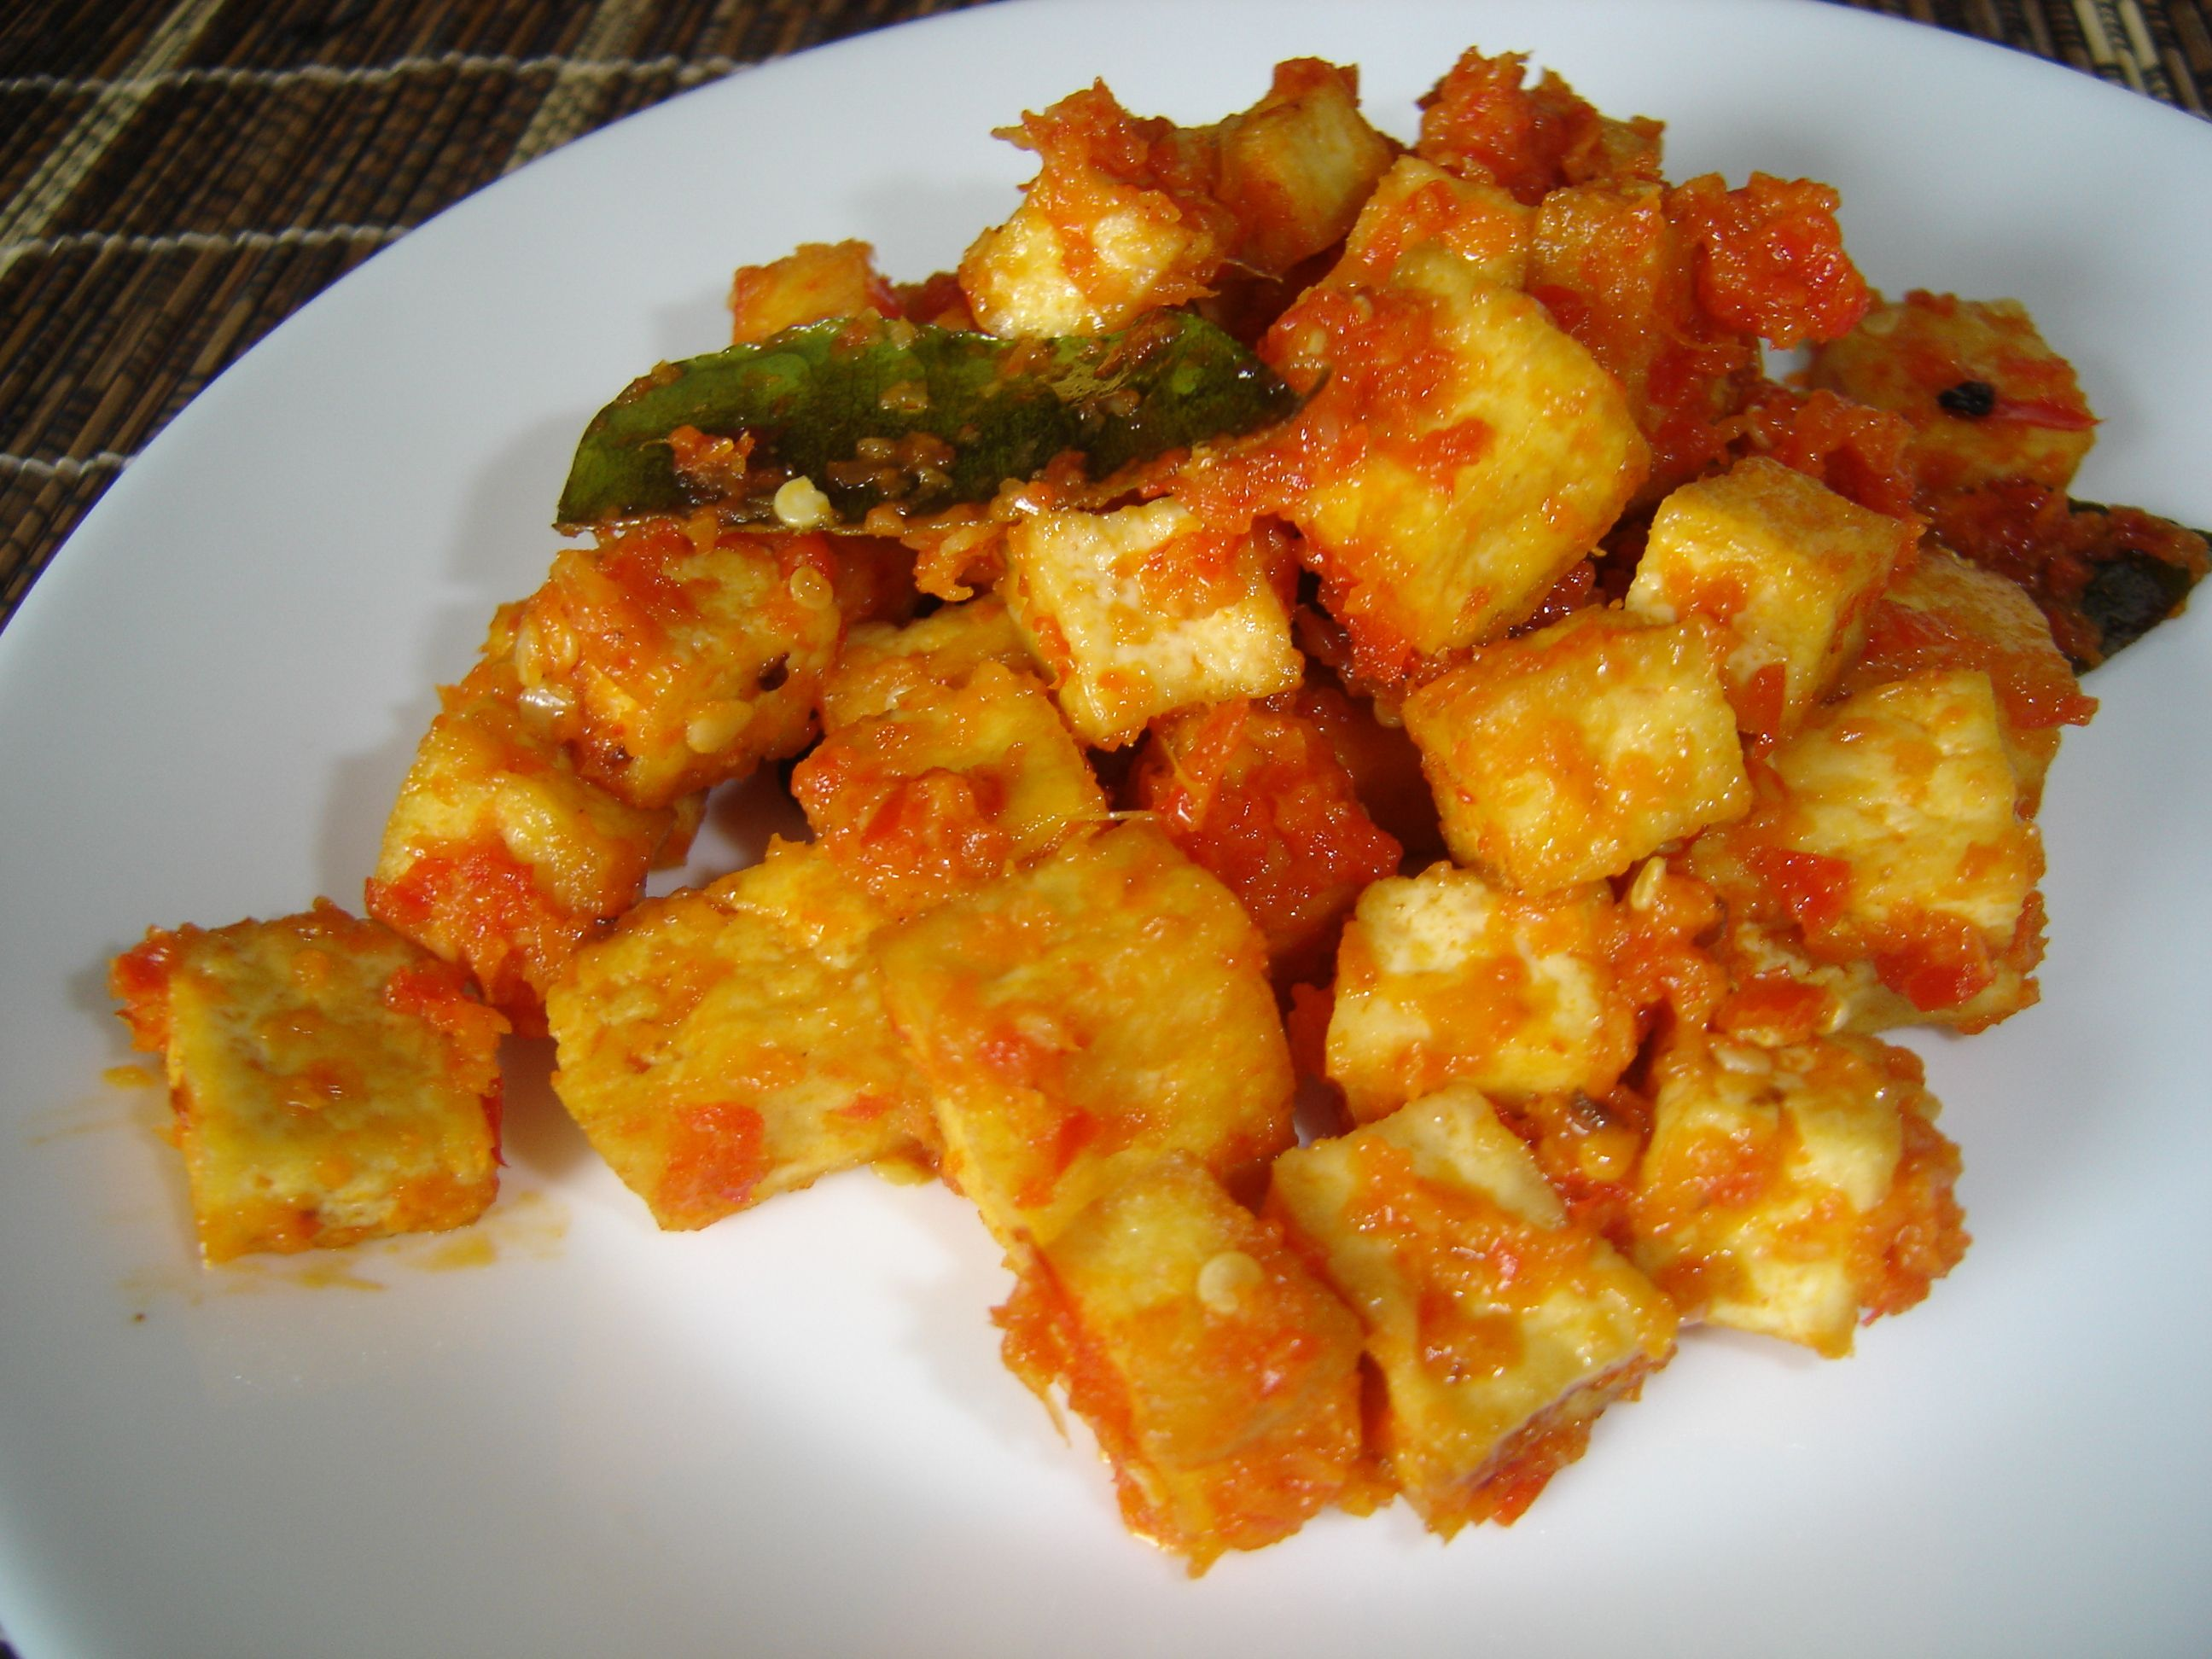 Tasty Indonesian Food - Balado Tahu